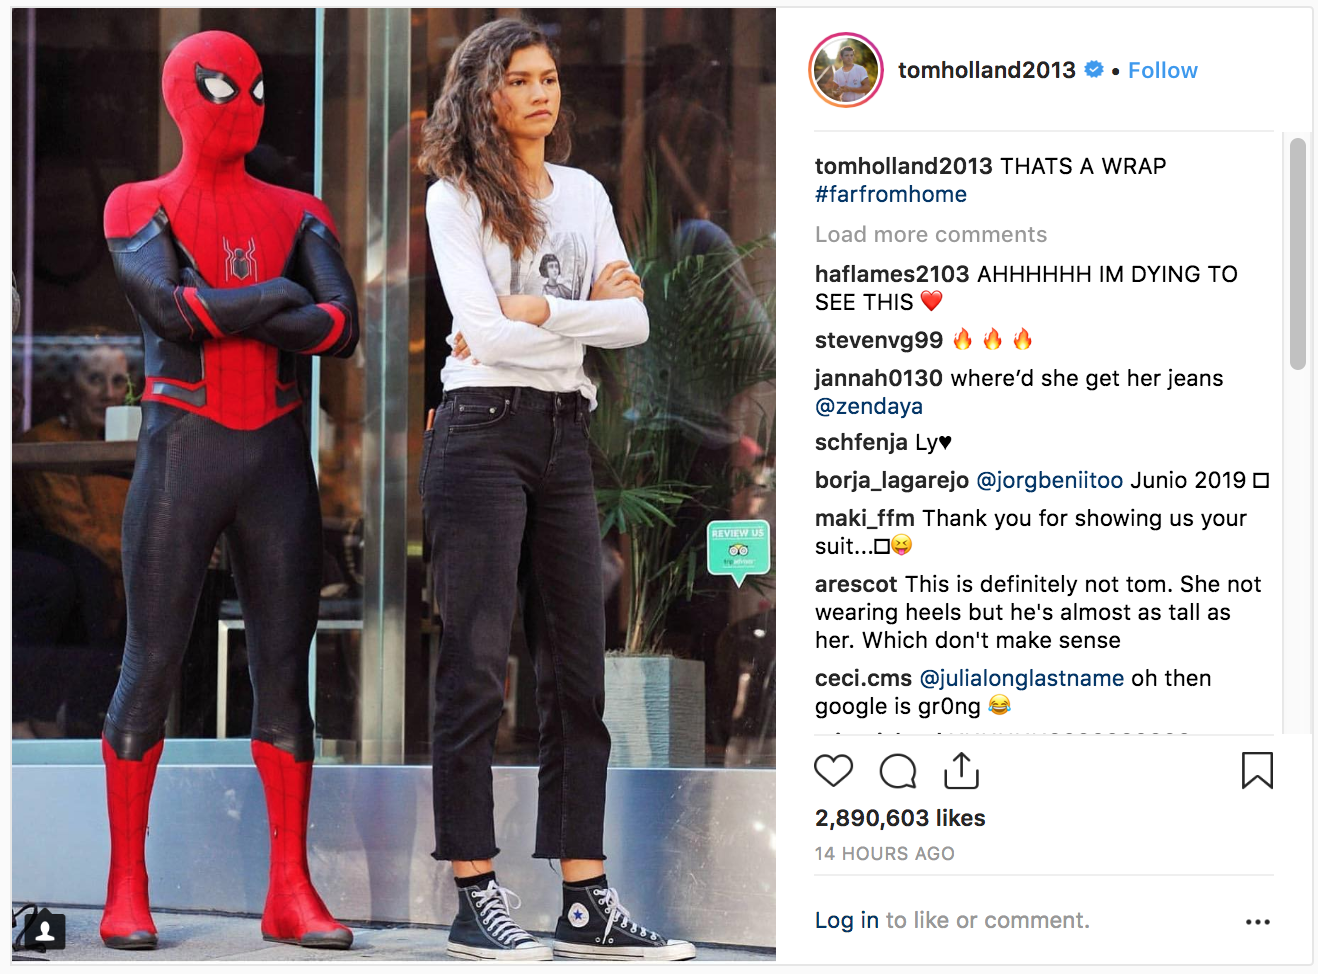 Tom Holland Announces Spider-Man: Far From Home Filming Wrap With Look at New Suit